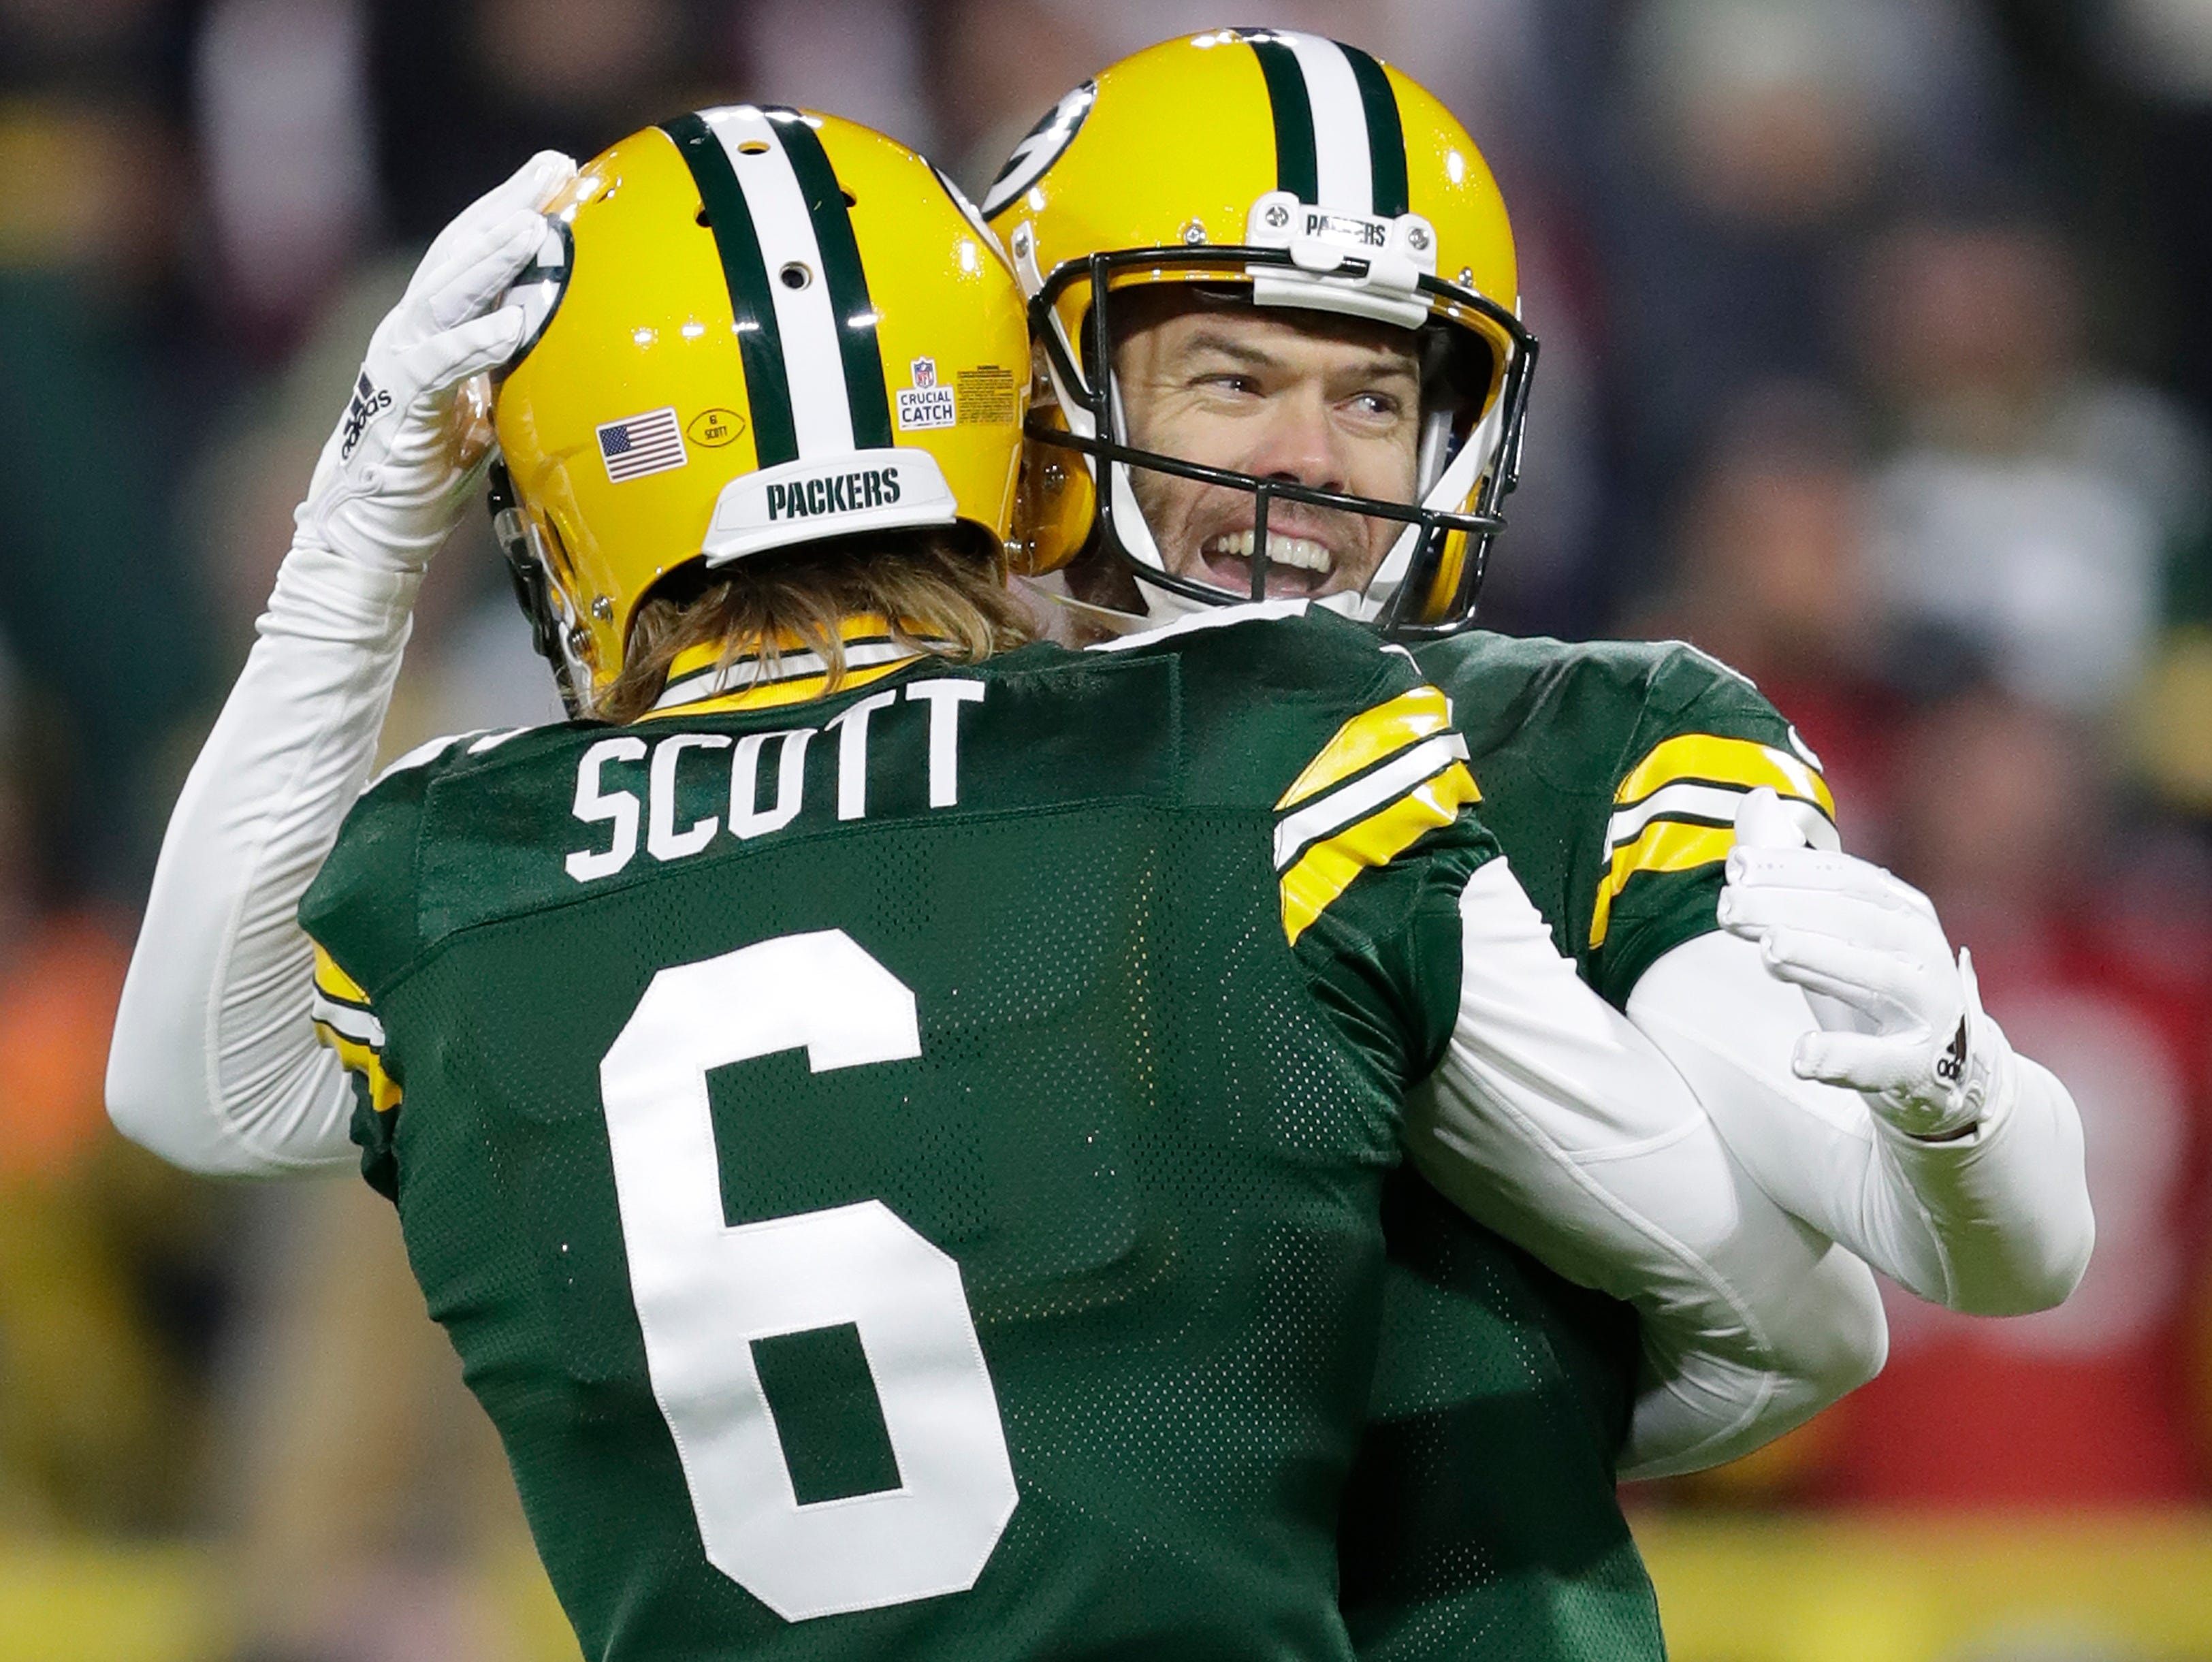 Green Bay Packers' Mason Crosby (2) celebrates his game-winning field goal with JK Scott (6) against the San Francisco 49ers during their football game Monday, Oct. 15, 2018, at Lambeau Field in Green Bay, Wis. 